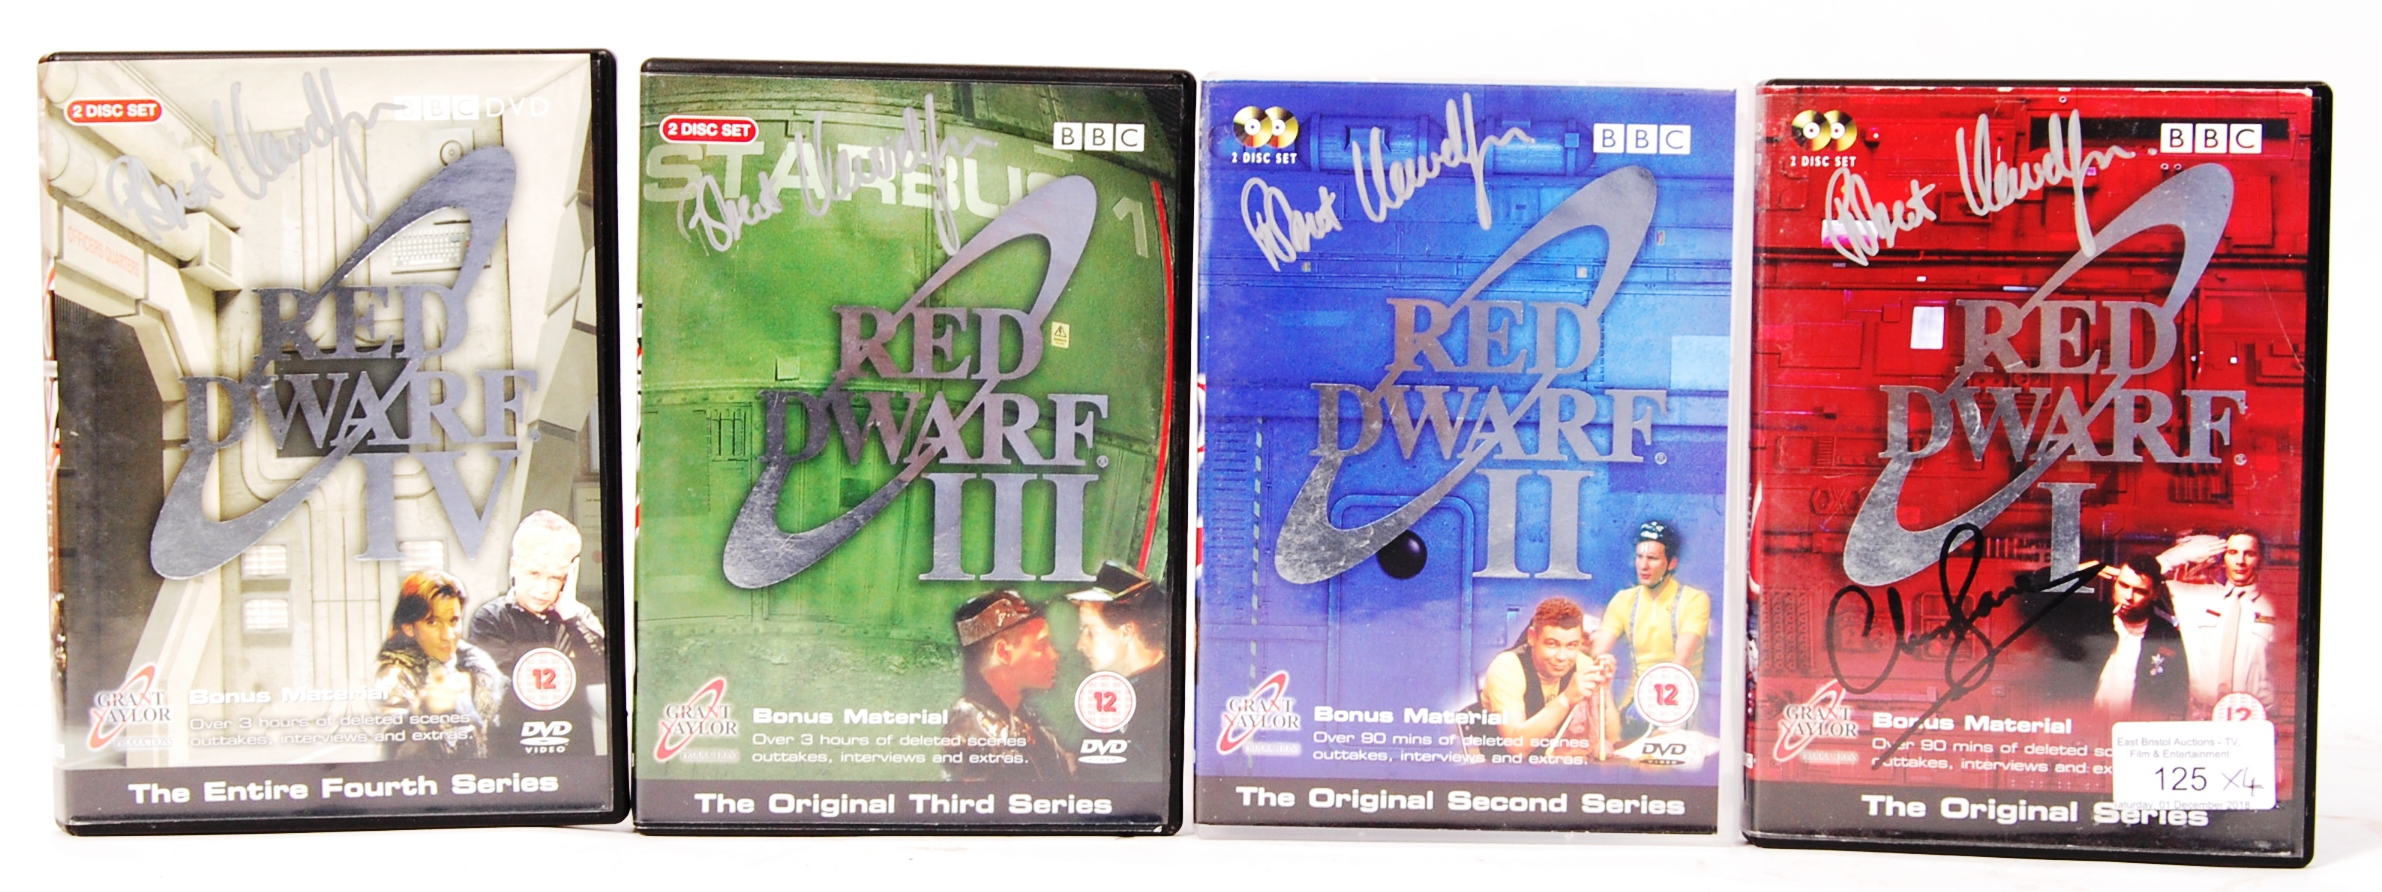 RED DWARF SERIES 1-4 AUTOGRAPHED DVD COLLECTION